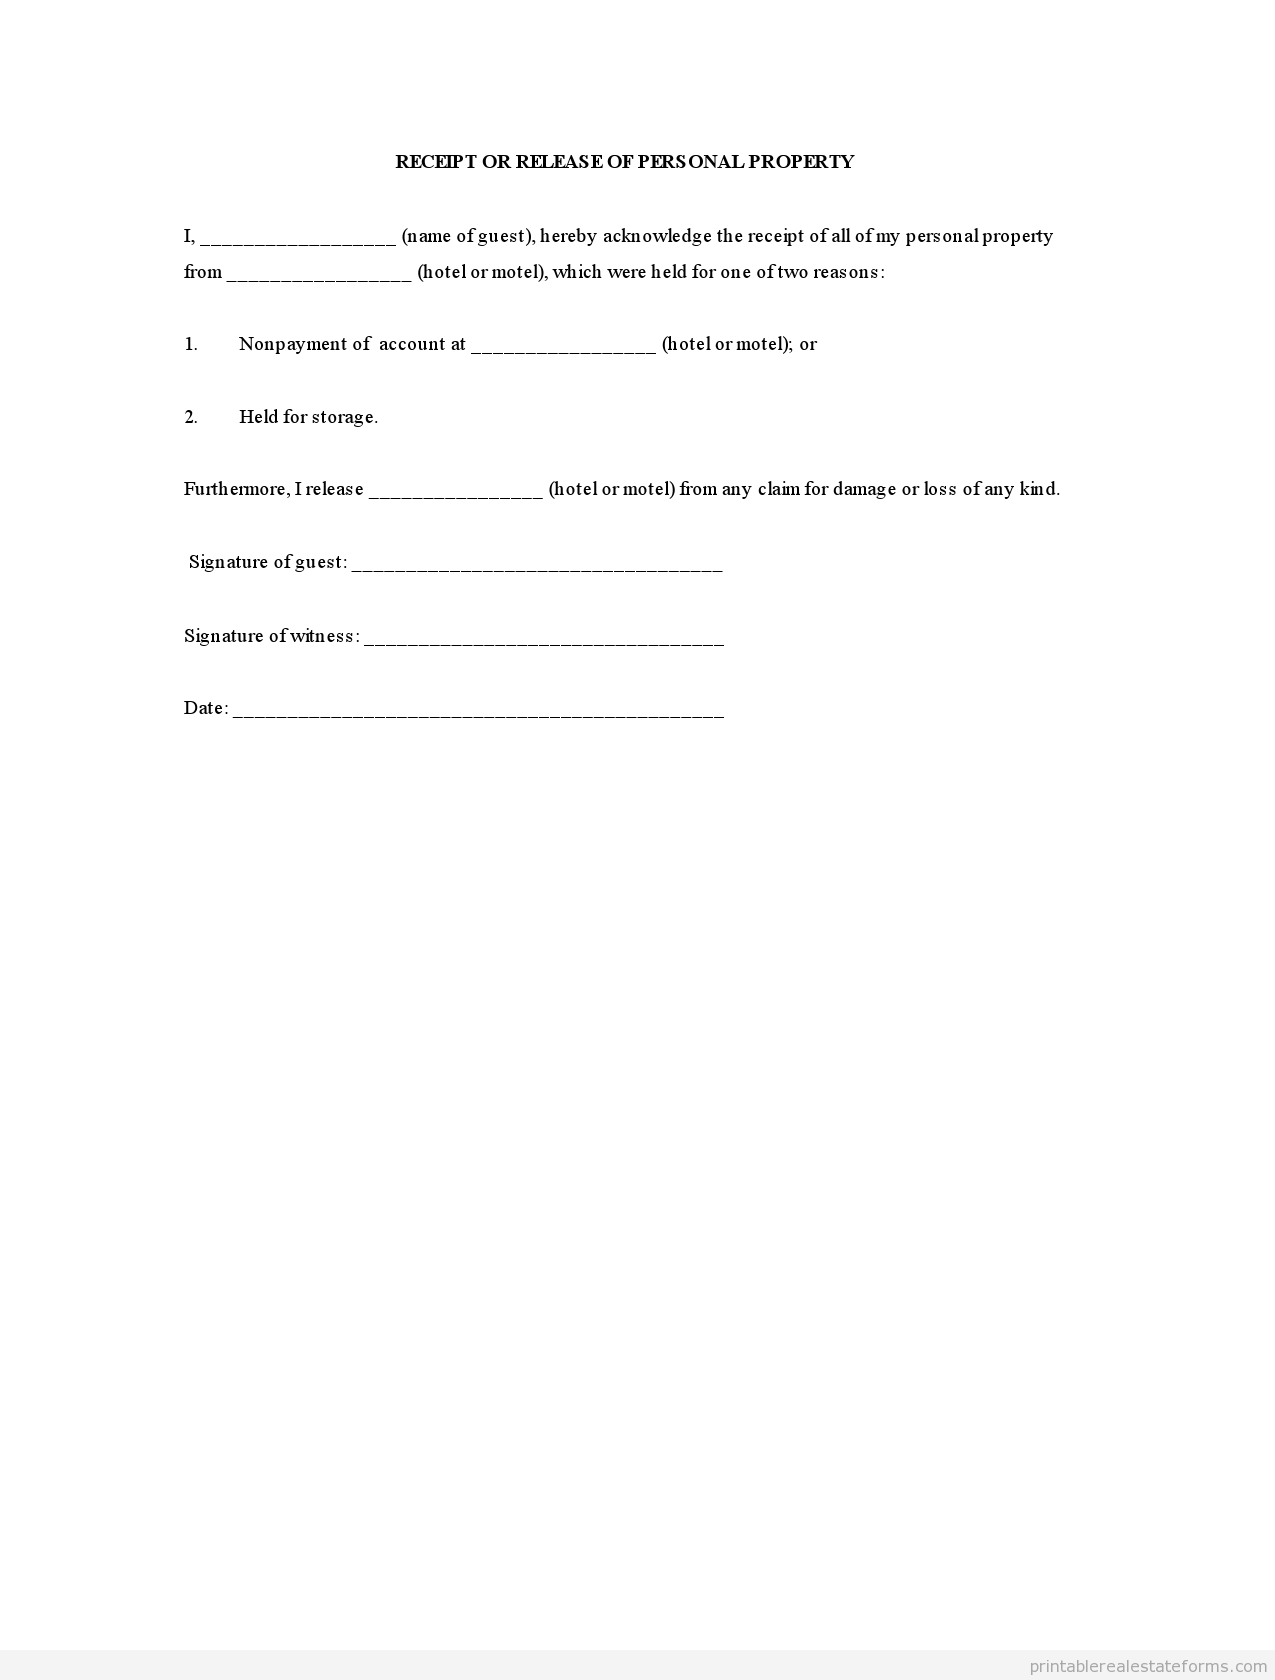 receipt and release letter Sample Printable receipt or release of personal property Form ...